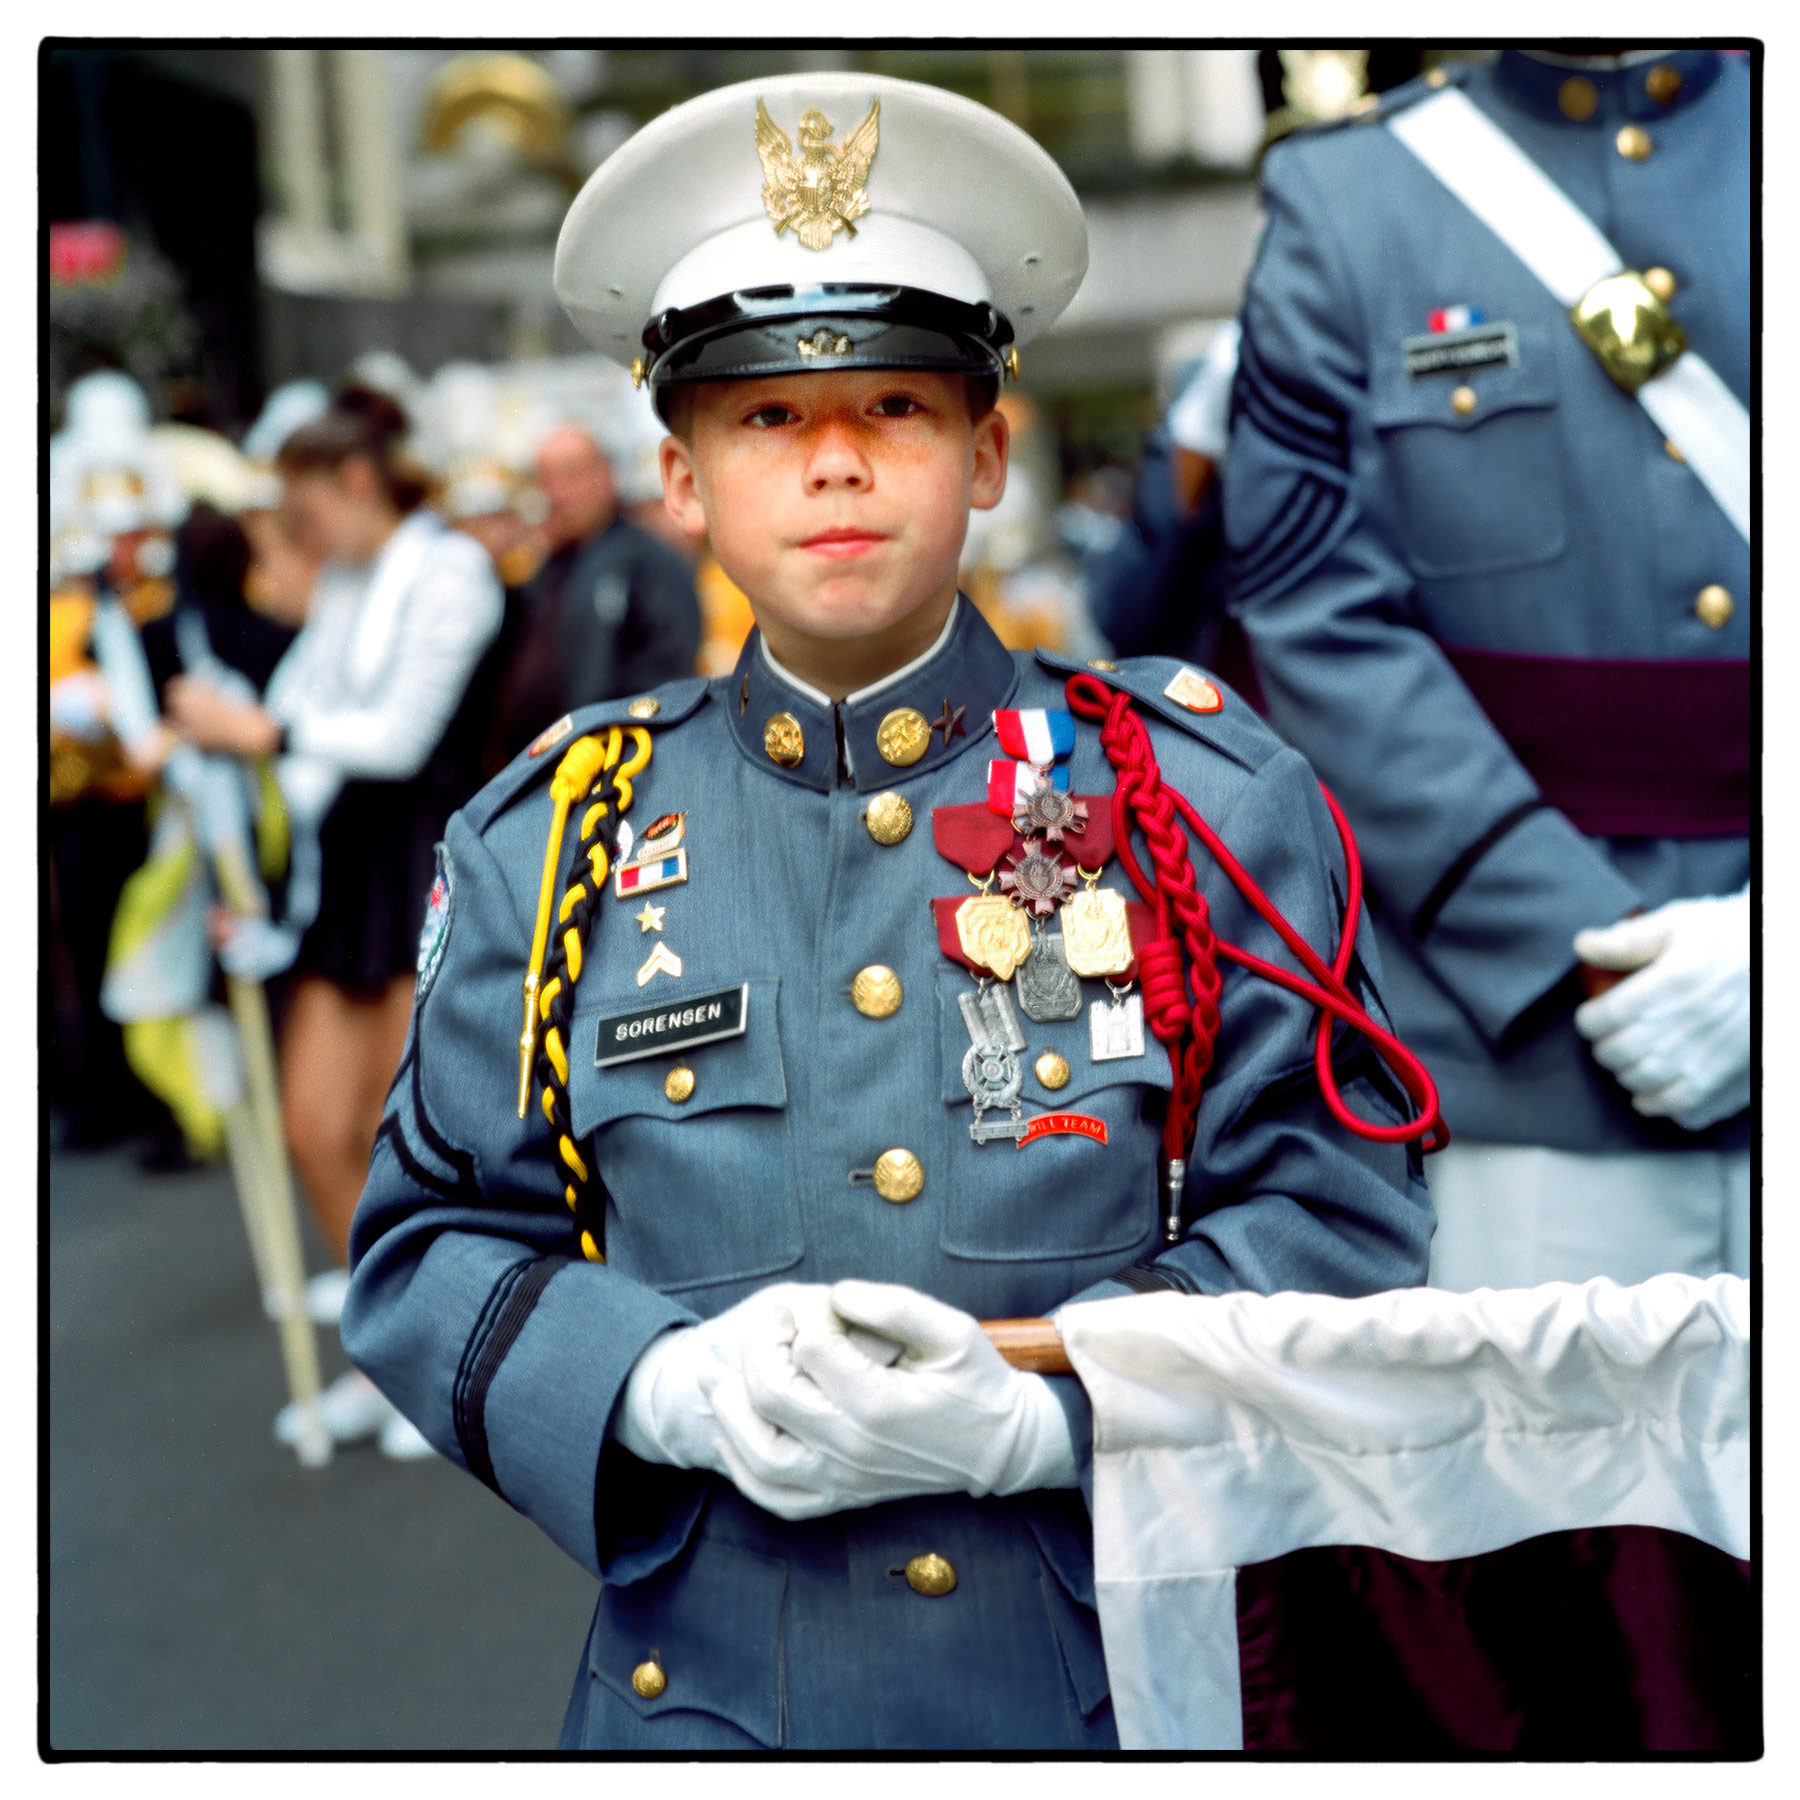 a-young-decorated-military-school-cadet-shows-off-his-medals-at-new-yorks-thanksgiving-day-parade